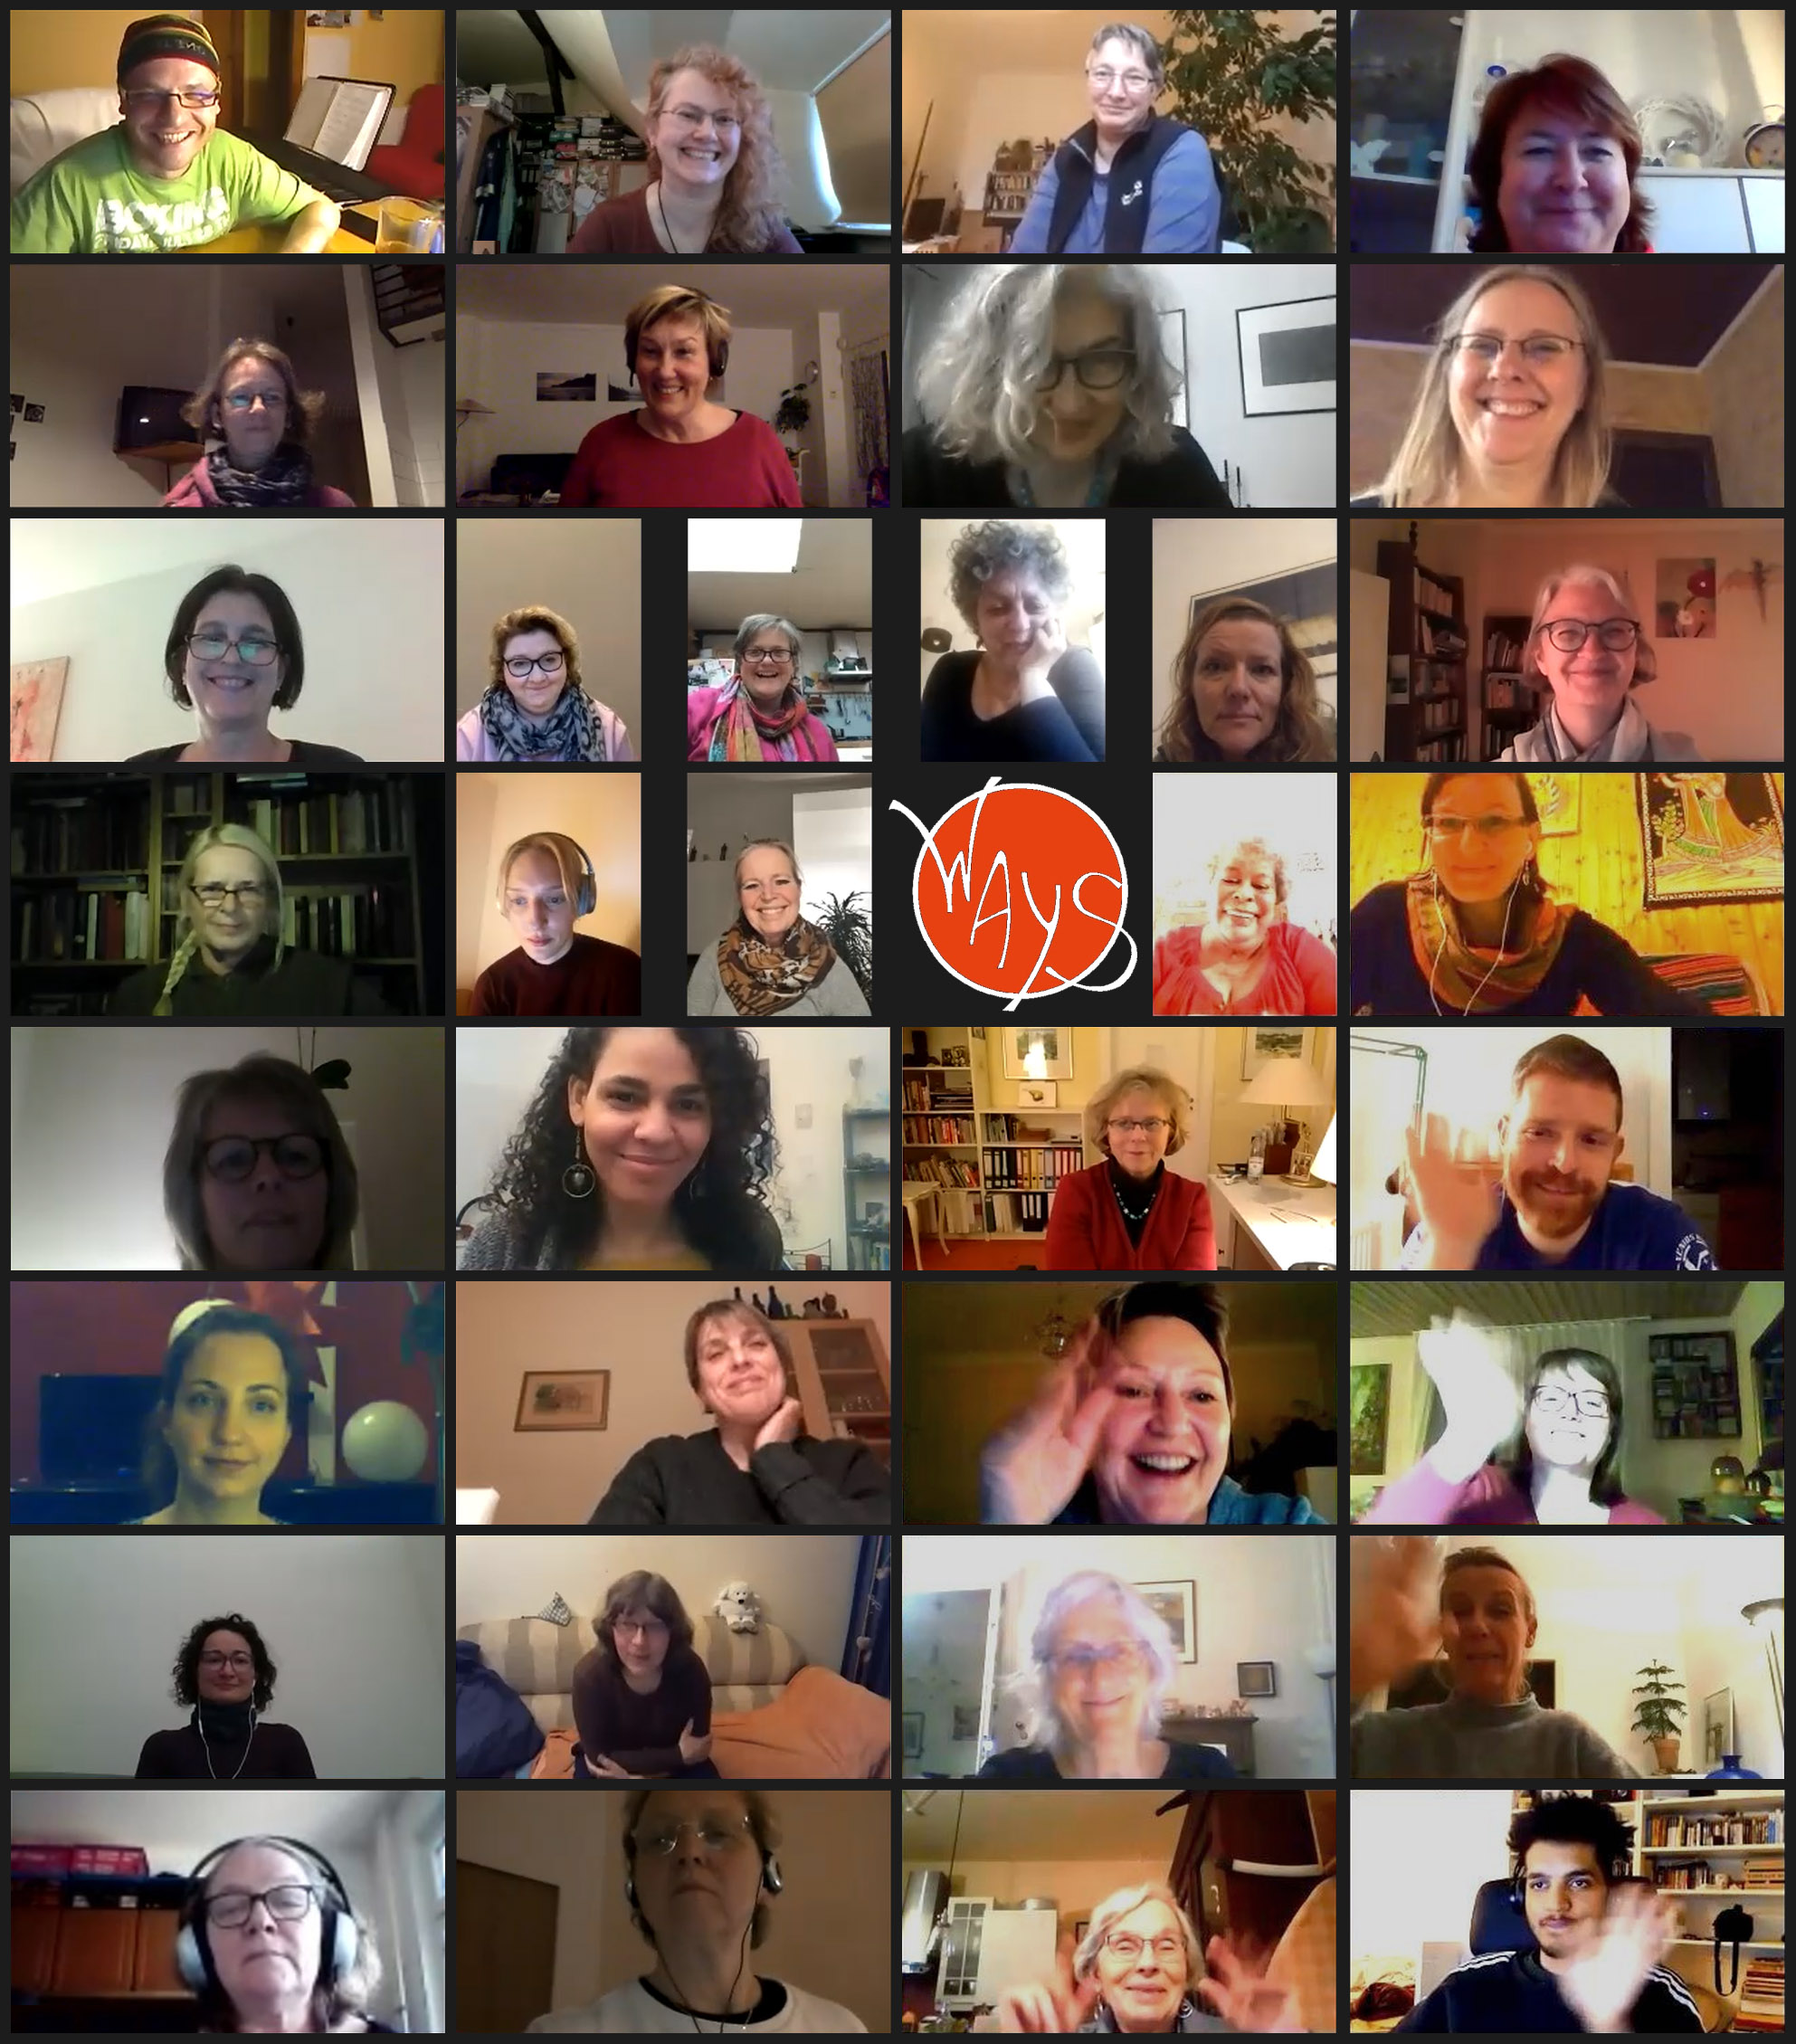 many single singers rehearsing from home via video meeting software